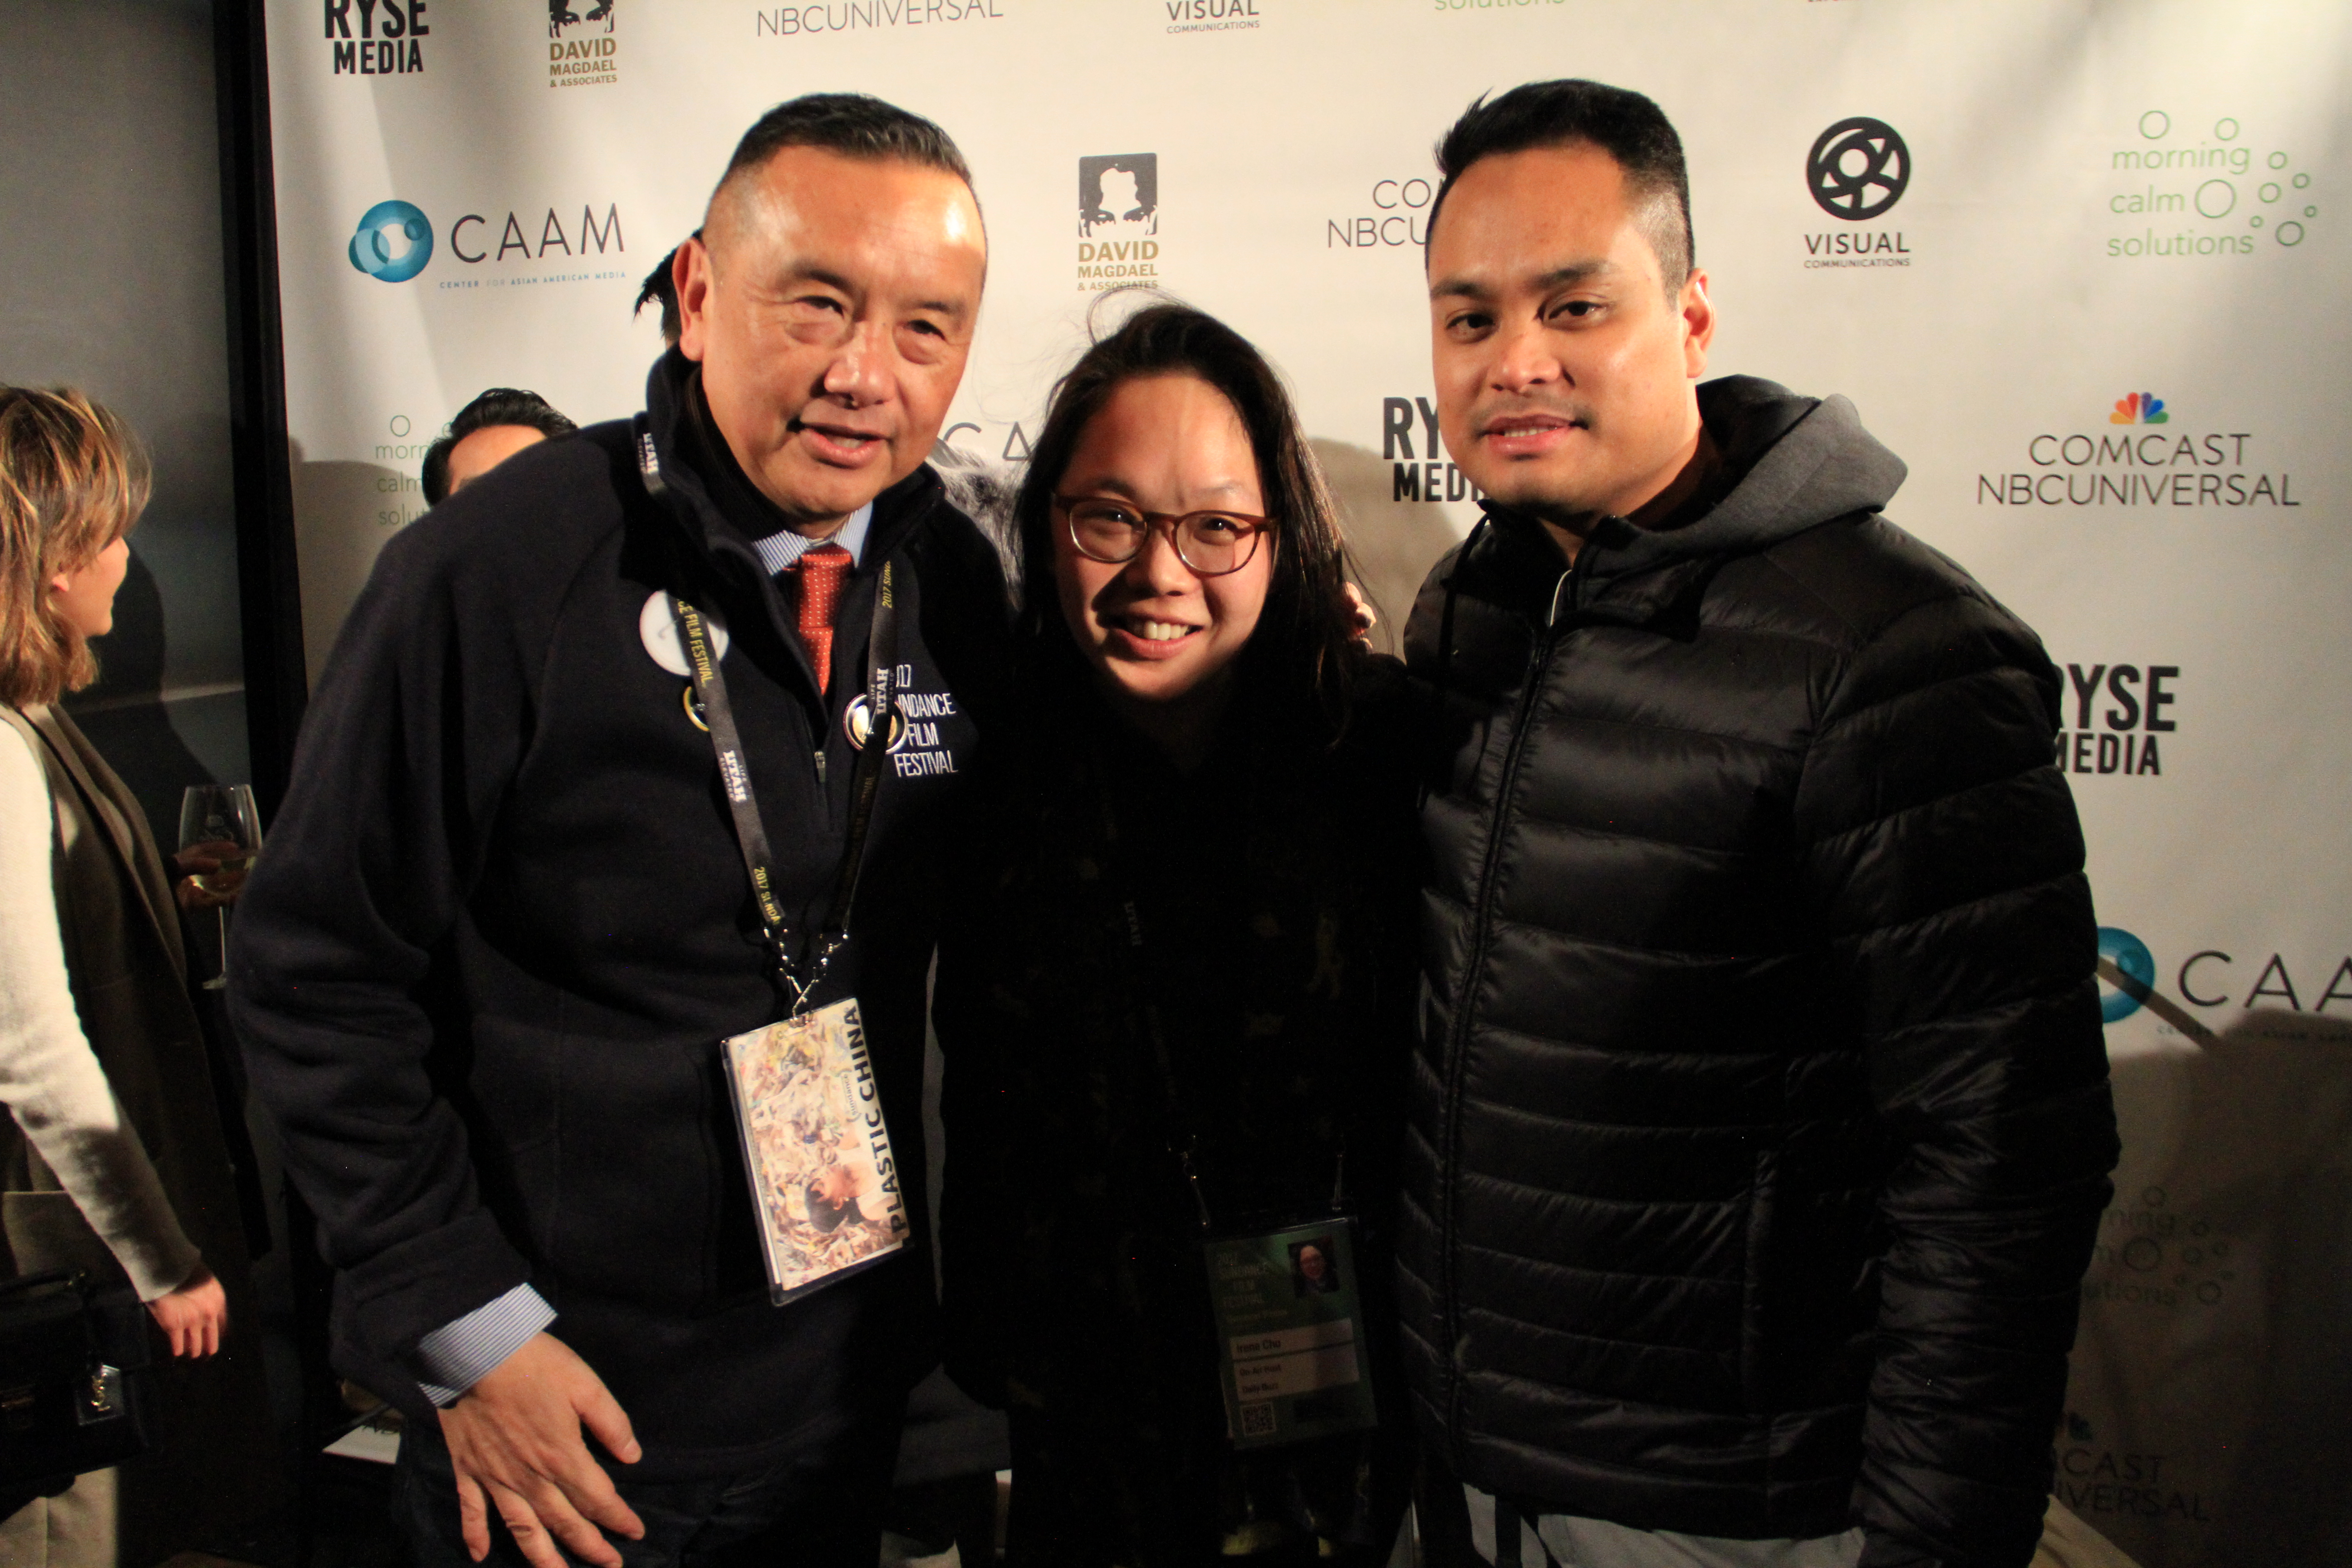 Irene (center) with David Magdael, David Magdael & Associates, Inc., (left) and Francis Cullado, Visual Communications (right) at the APA Filmmakers Experience, Sundance 2017. Photo courtesy of Abe Ferrer.